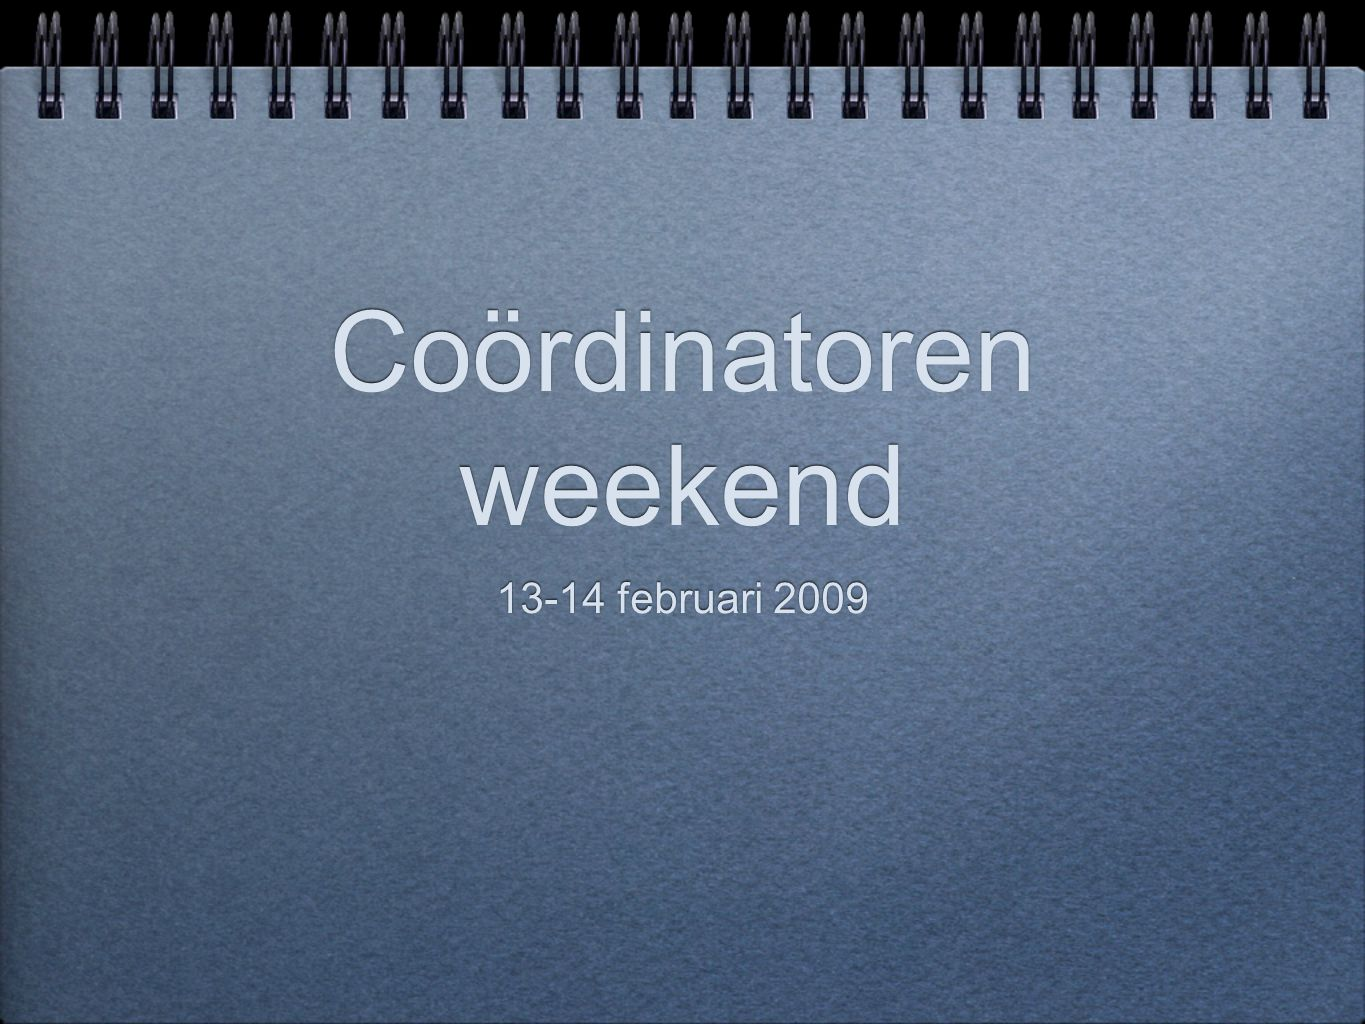 Coördinatoren weekend 13-14 februari 2009